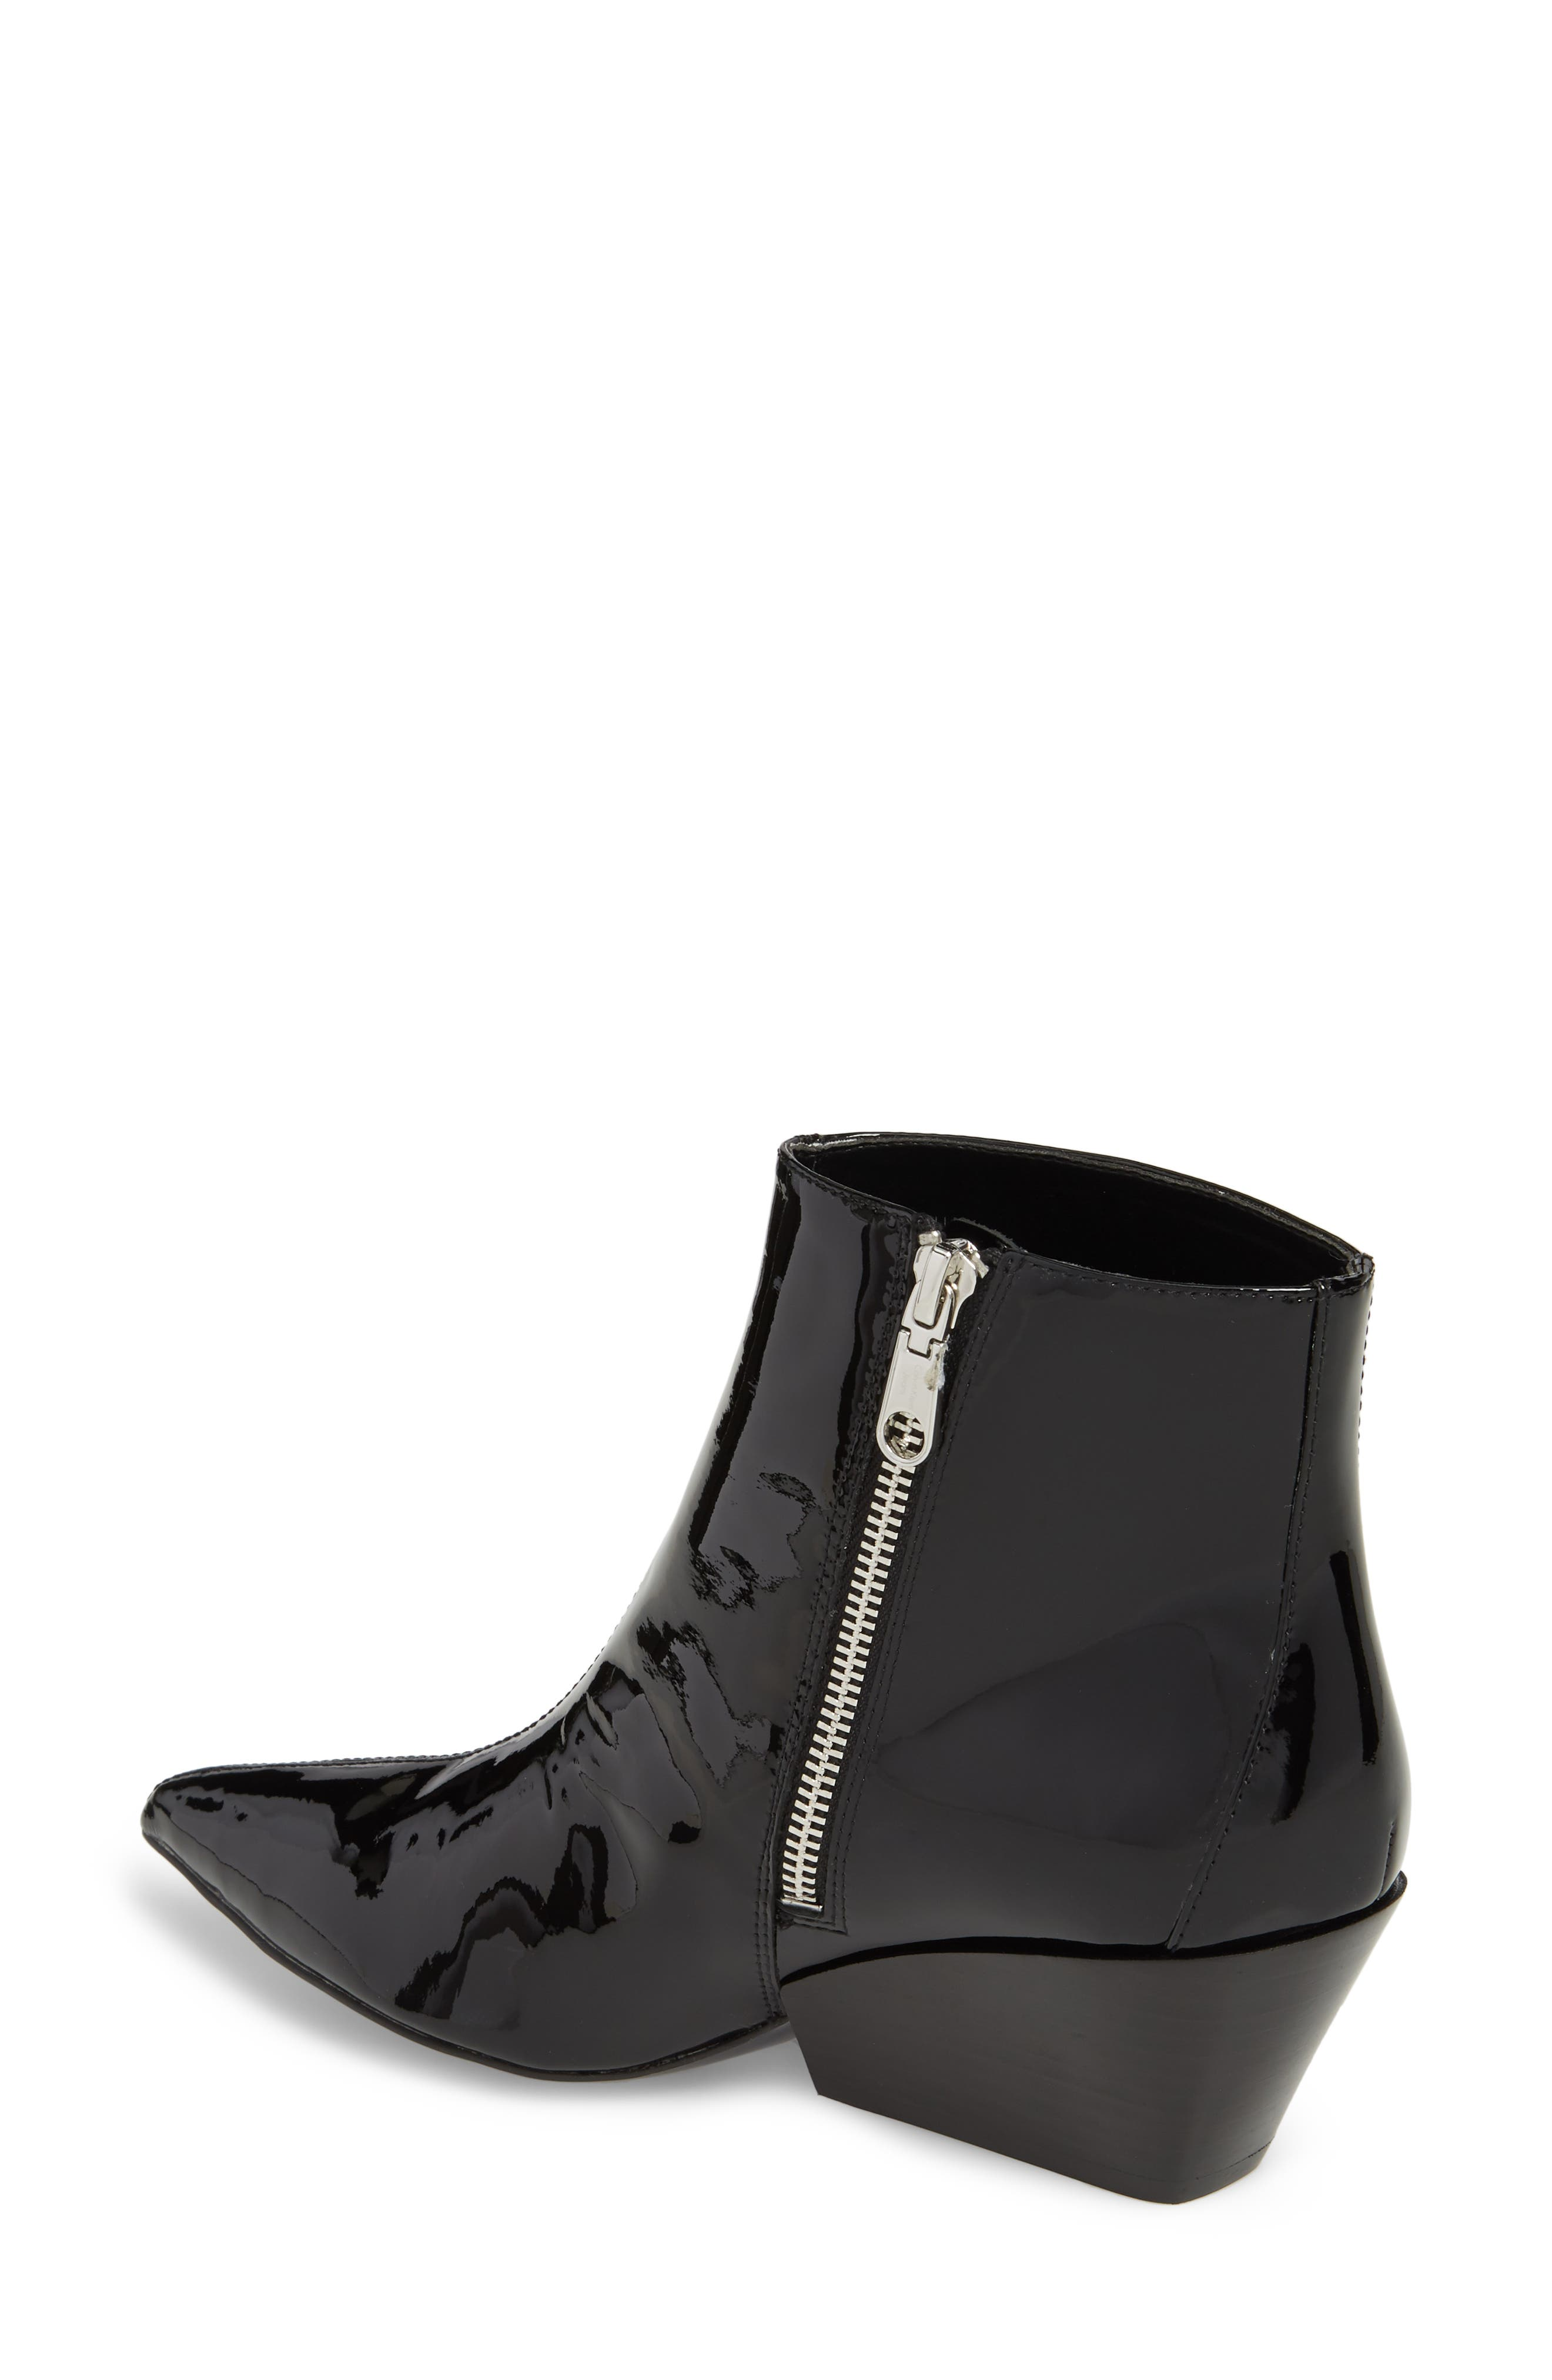 Freda Pointy Toe Bootie,                             Alternate thumbnail 2, color,                             BLACK PATENT